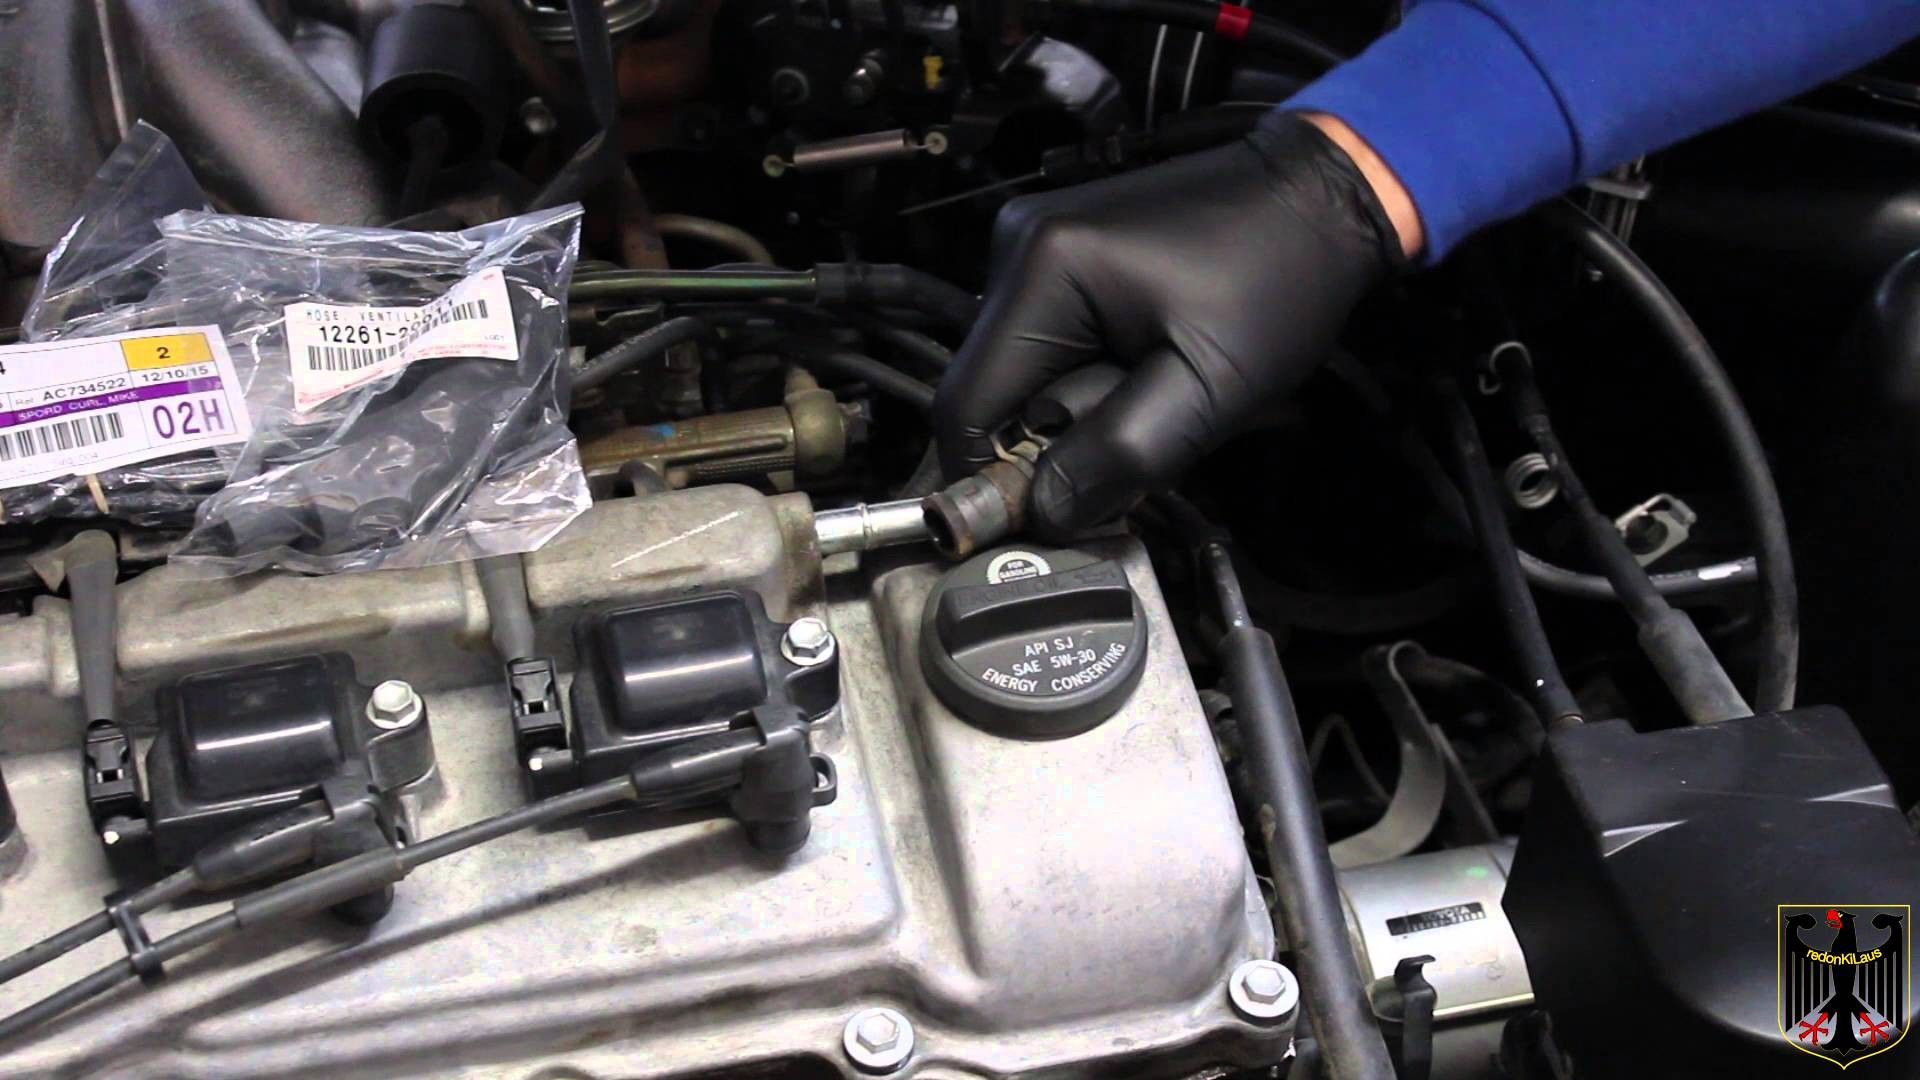 2002 Toyota Camry 4 Cylinder Engine Diagram 2001 Vacuum Line Replacement Of